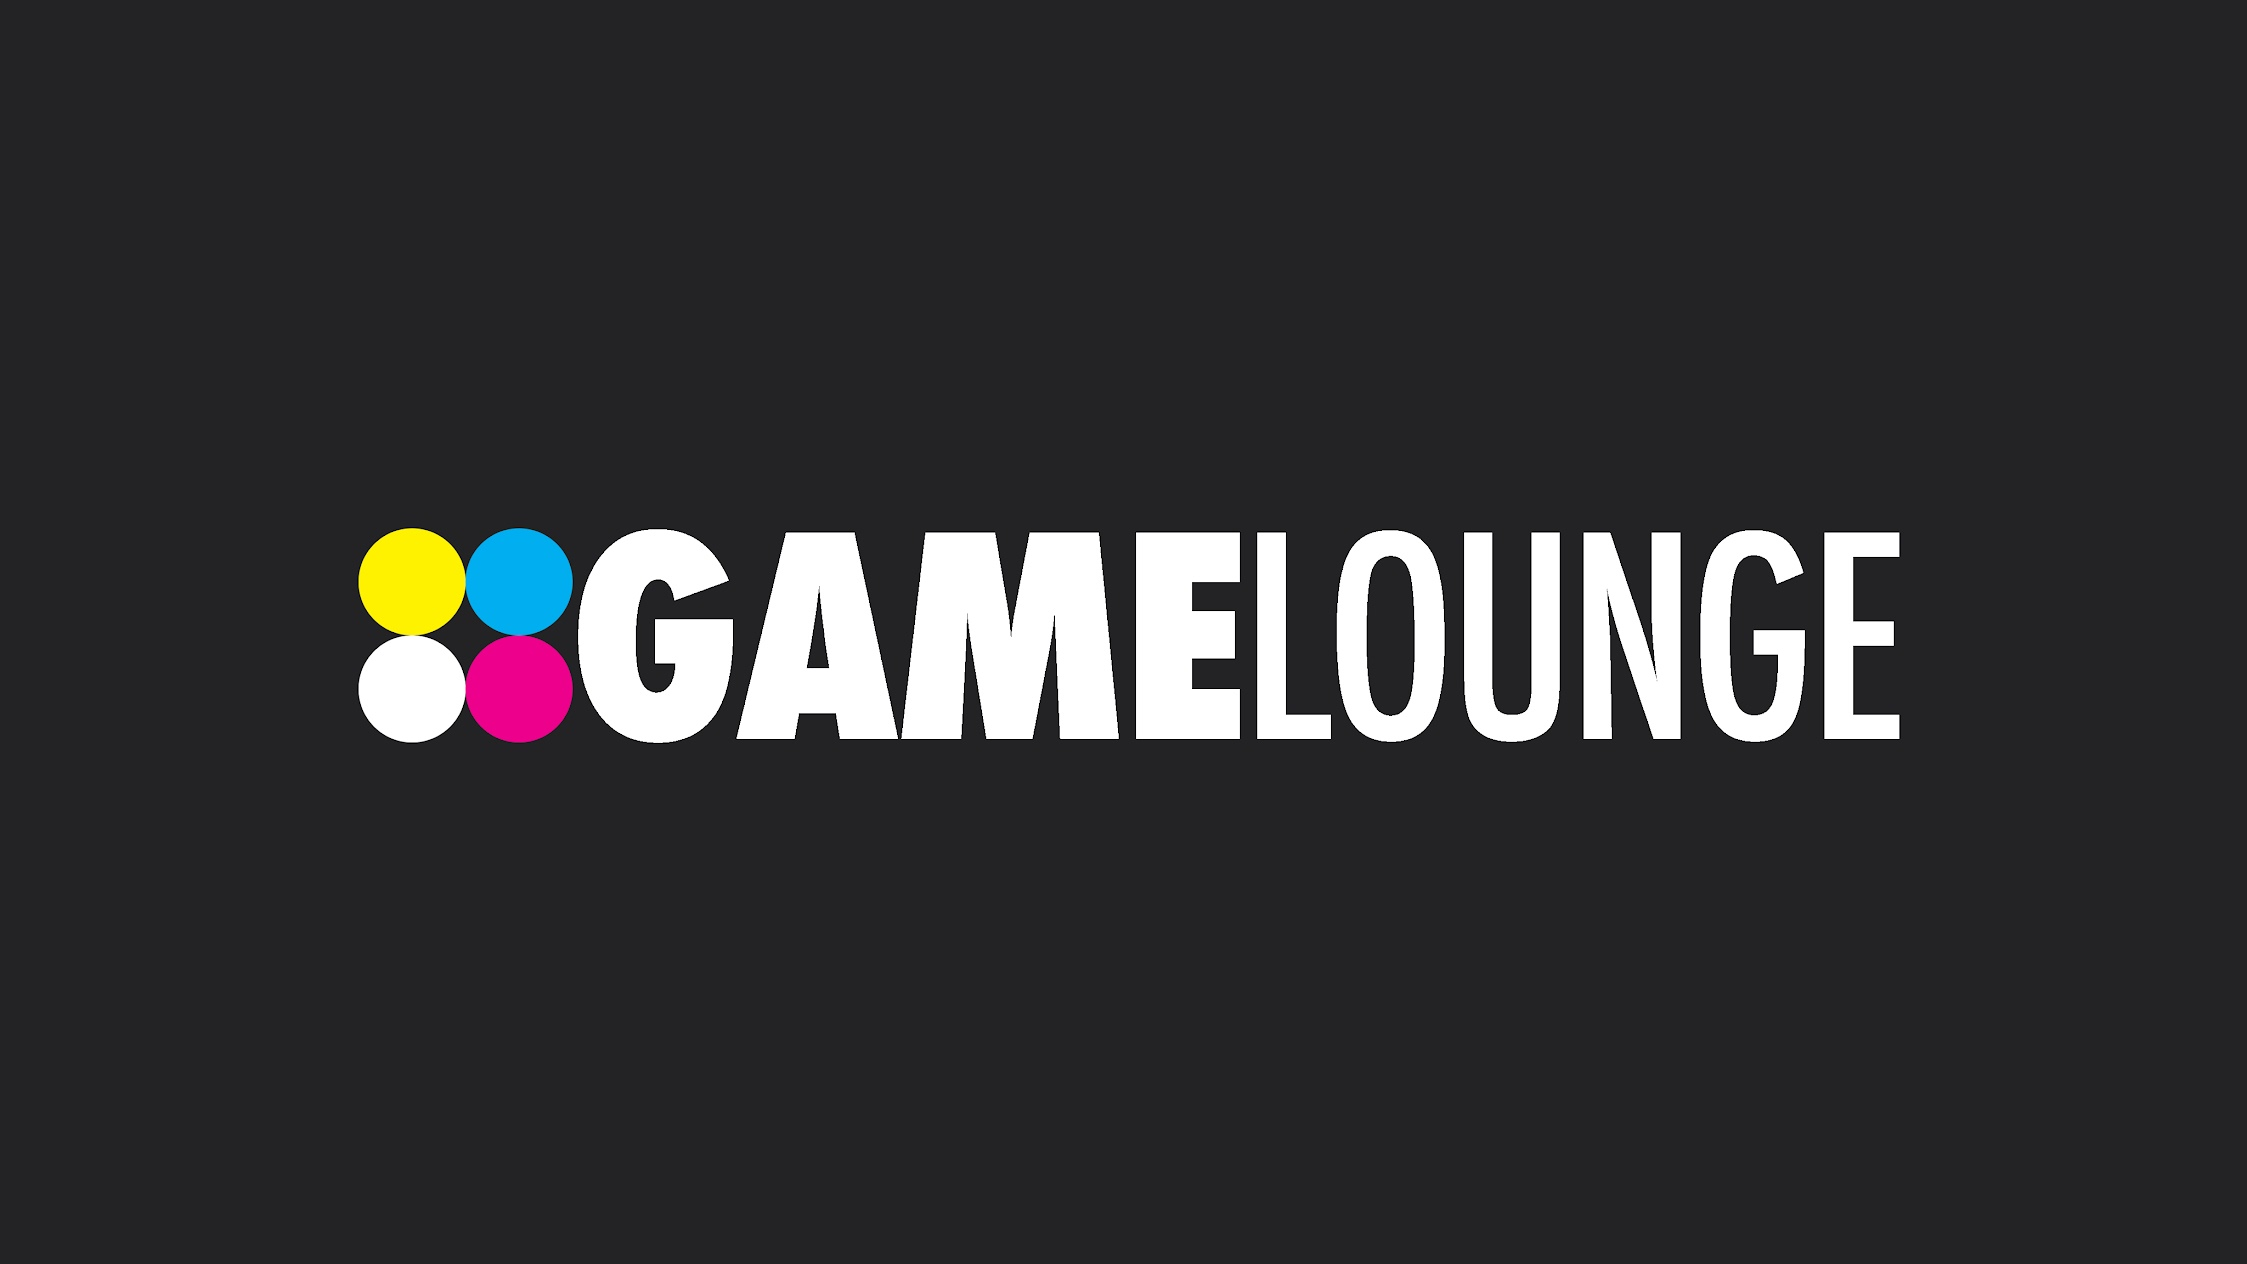 GameLounge